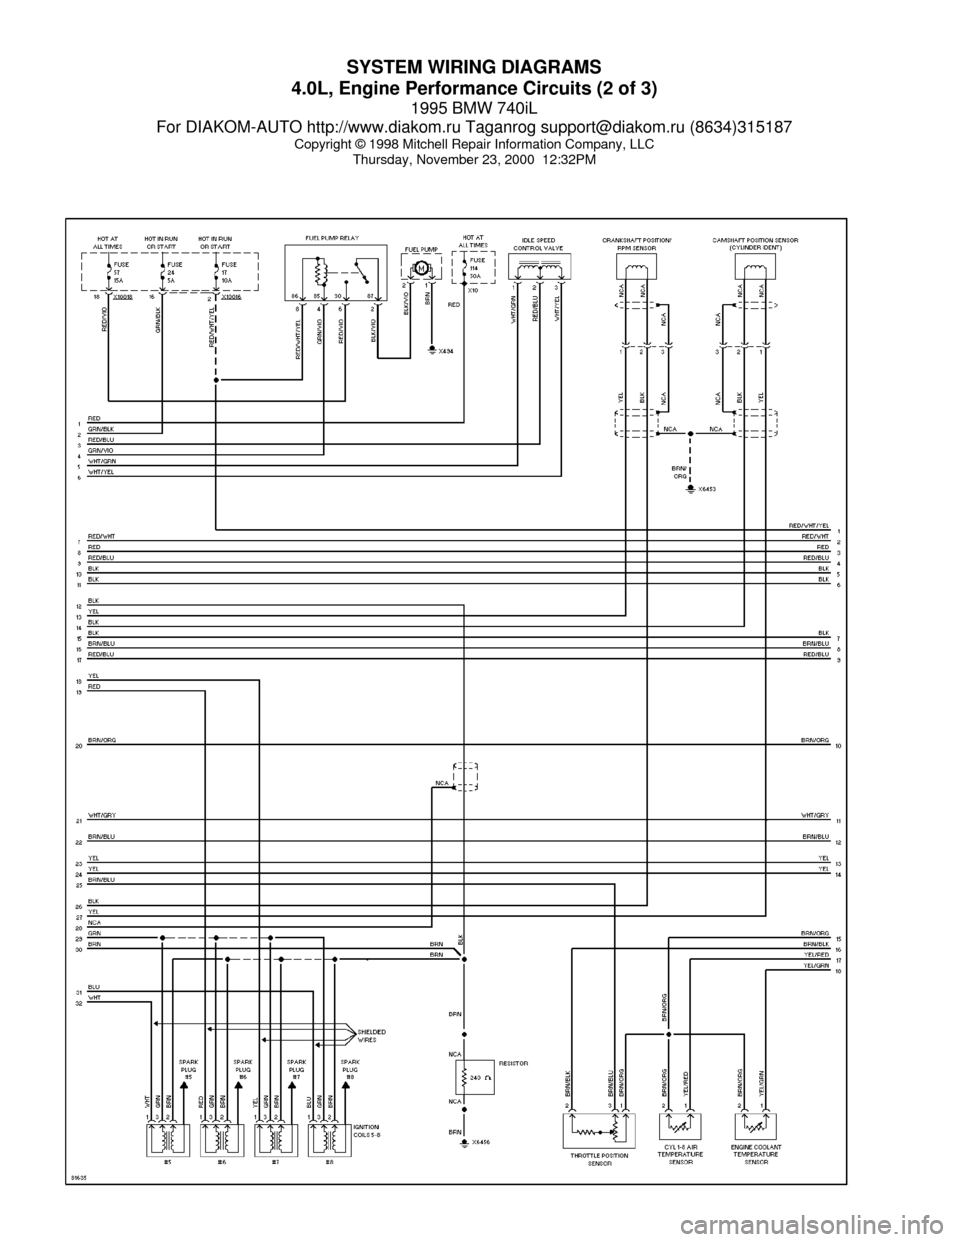 hight resolution of 1993 bmw 740il wiring diagram wiring diagram expert 1993 bmw 740il wiring diagram